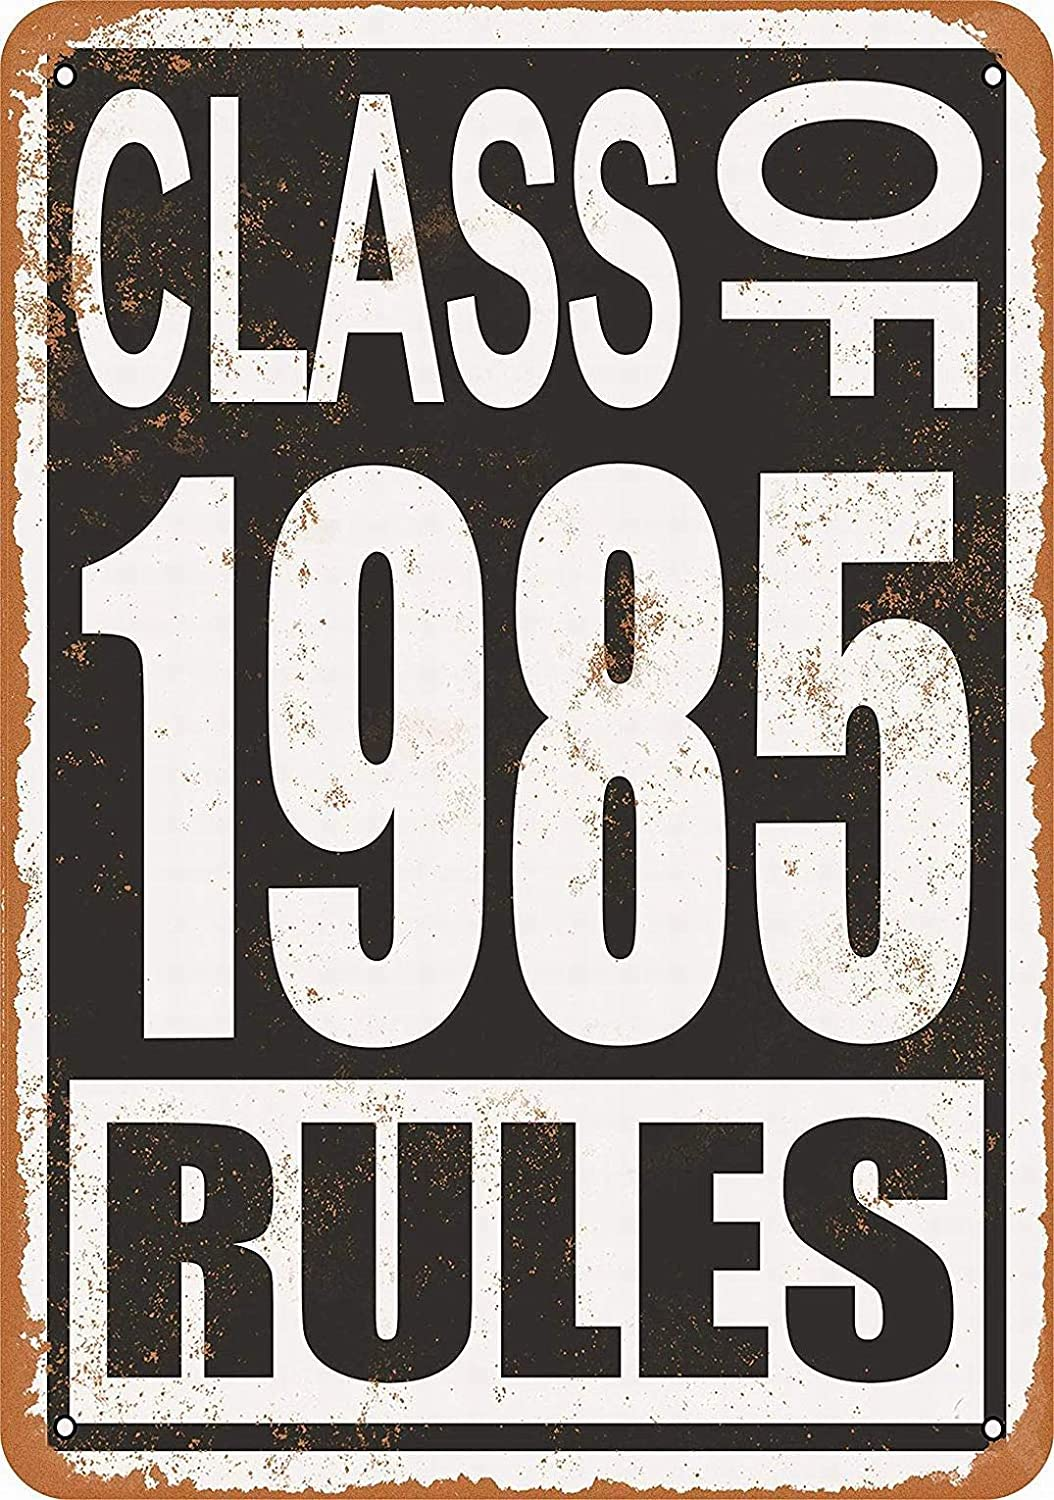 Vintage Decorative Tin Sign PaBoe 12 x 16 Metal Sign 12inch16inch, AU196 Class of 1986 Rules